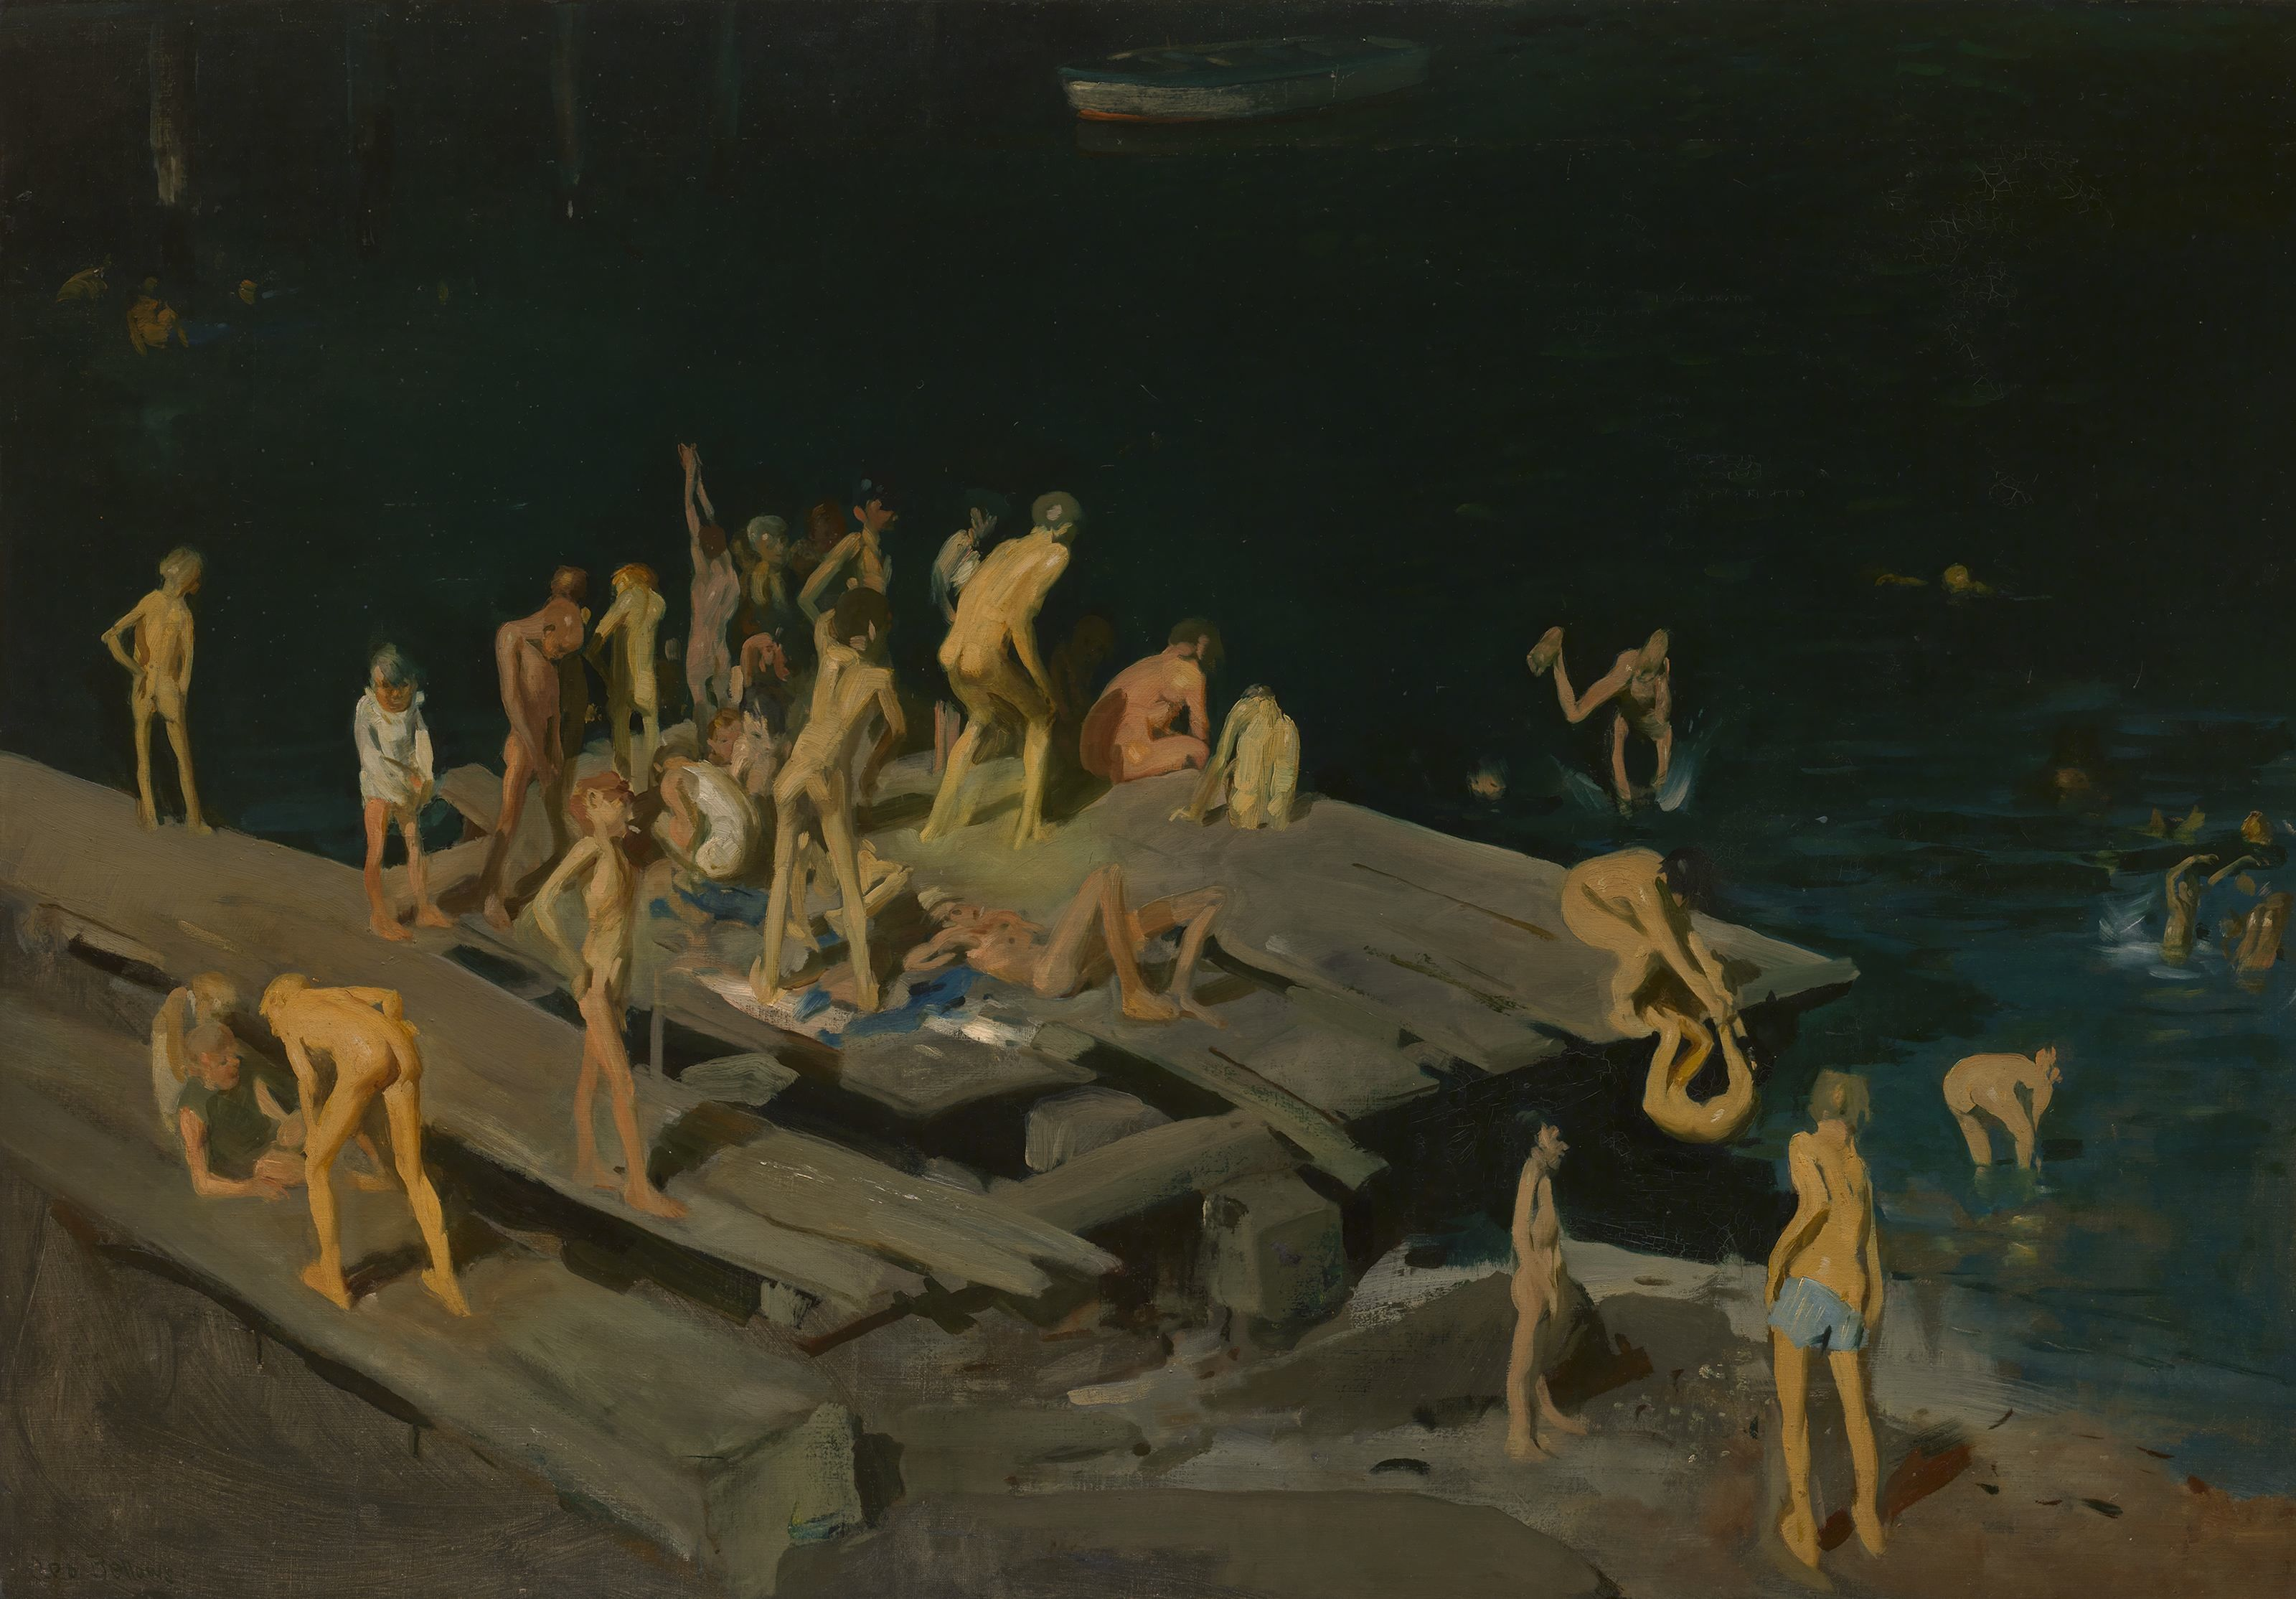 Hell in a kiss: The Boxers of George Bellows